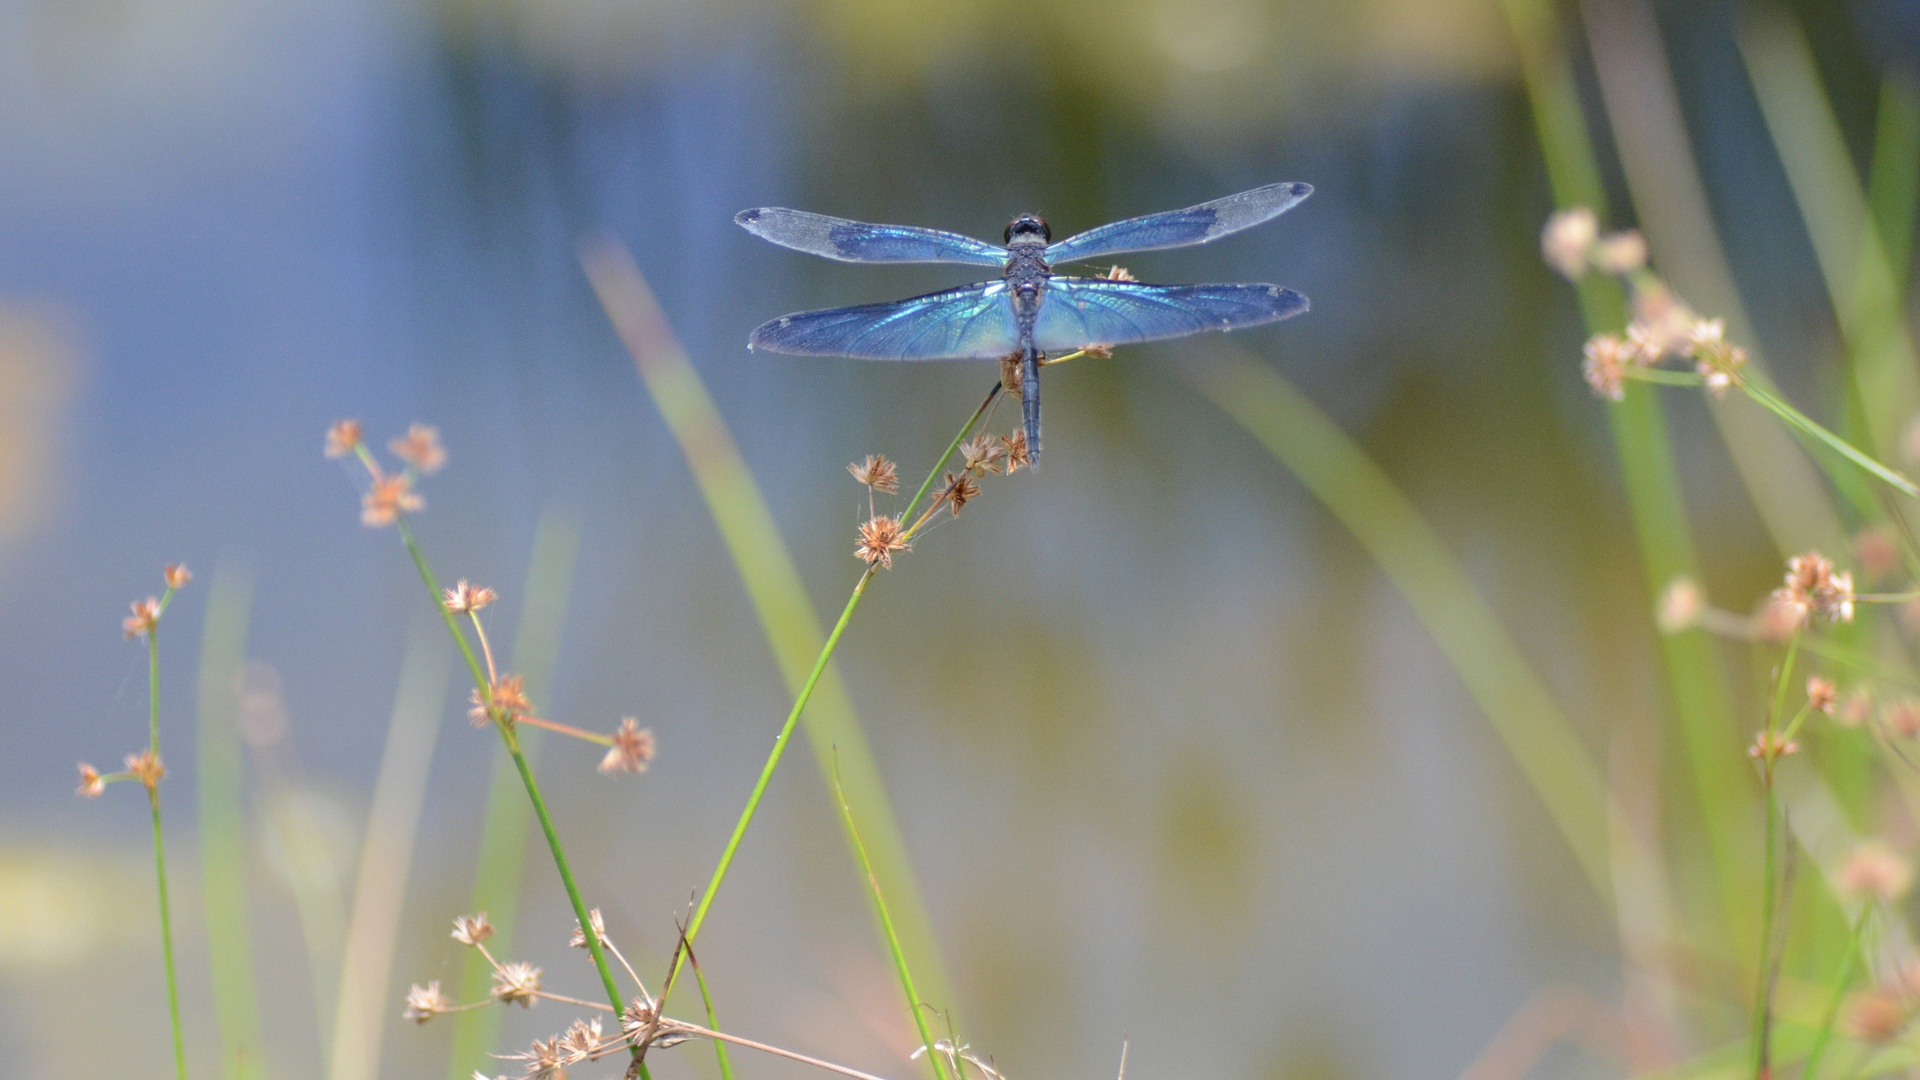 Dragonfly Backgrounds Download 1920x1080